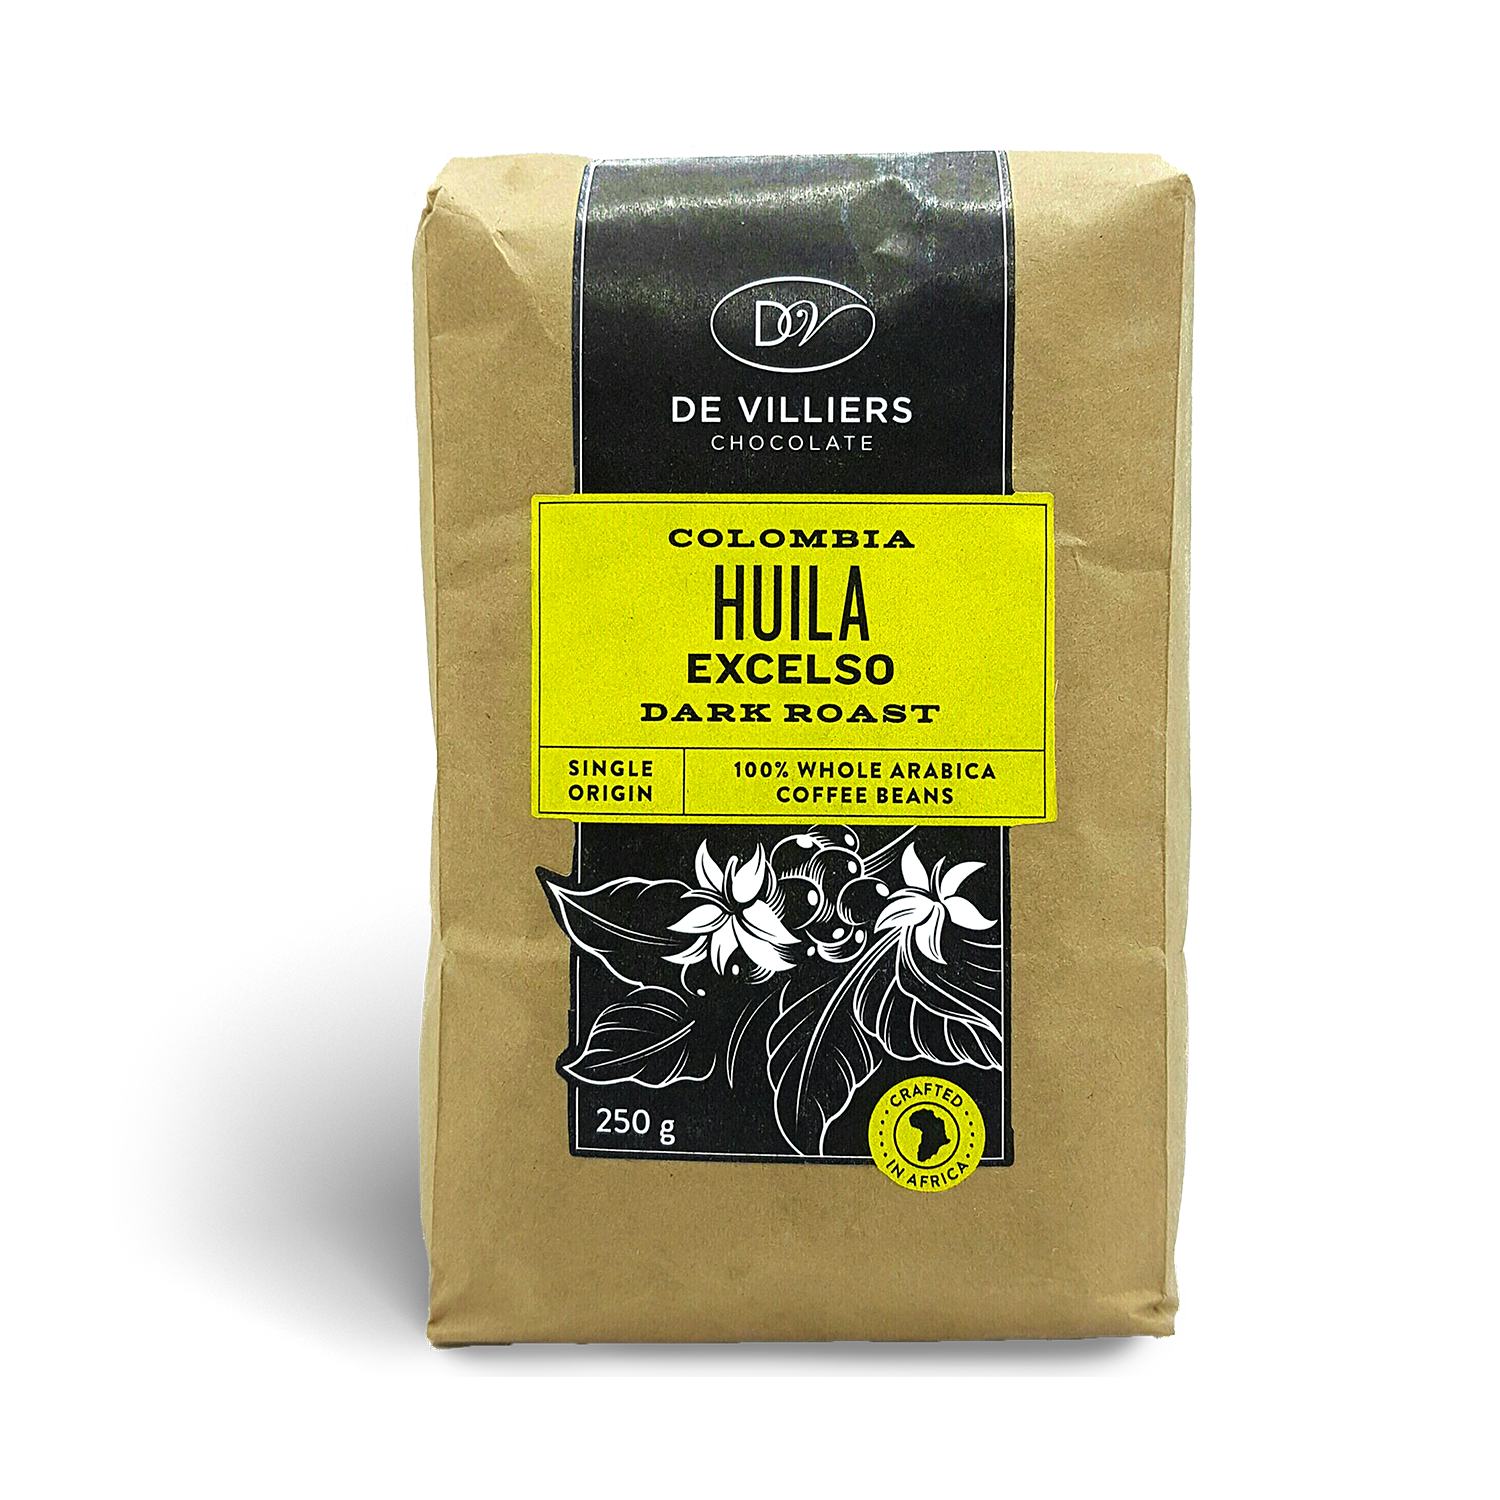 Colombia Huila Excelso Coffee Beans